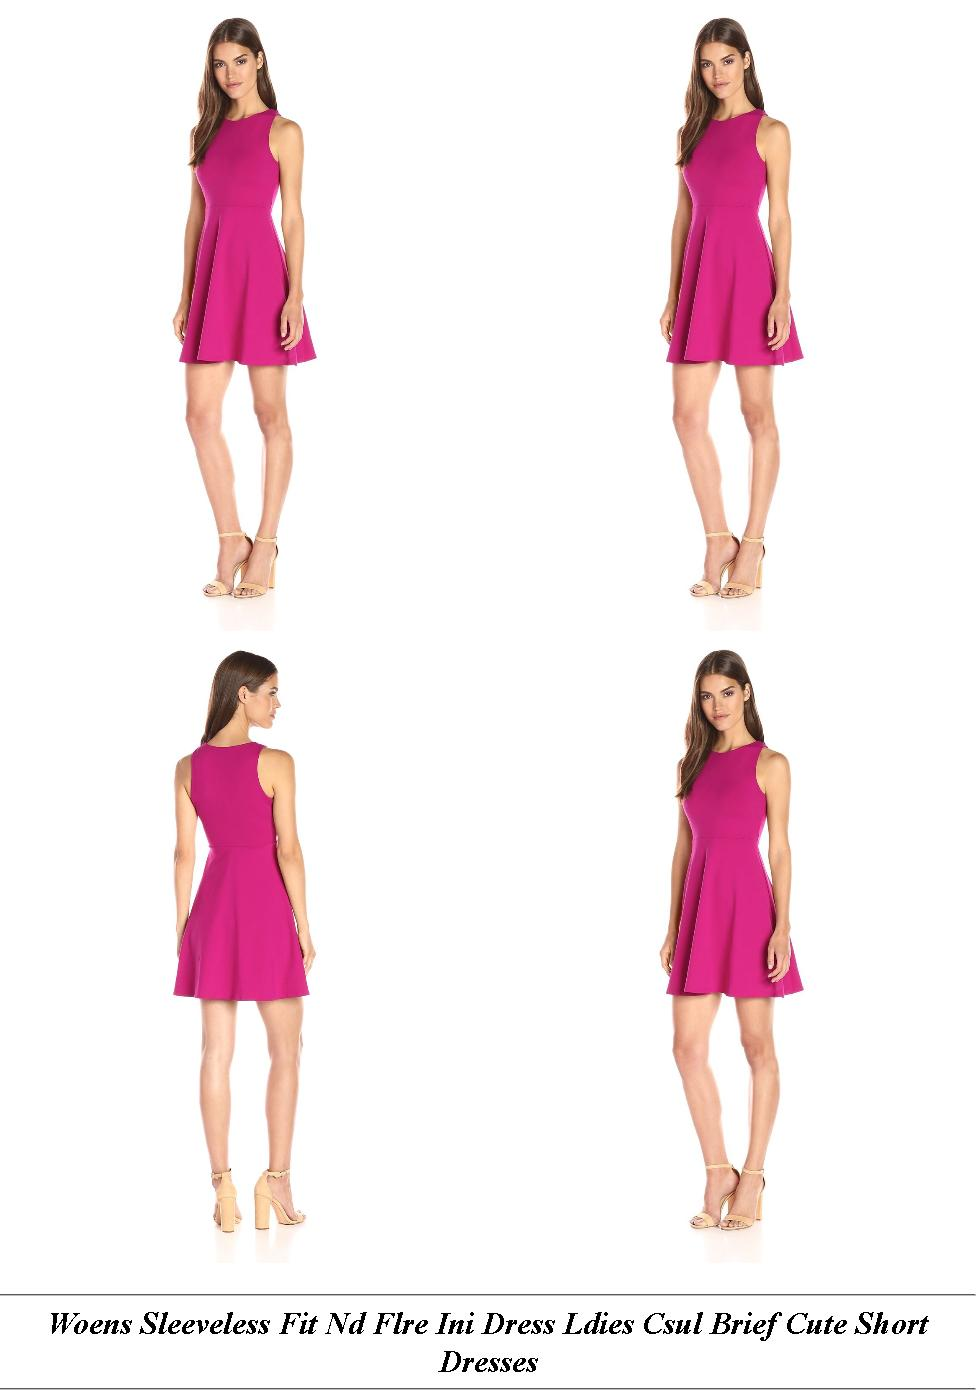 Sleeves And V Neck - Shirts For Sale On Eay - Prom Dress Stores In Minneapolis Minnesota